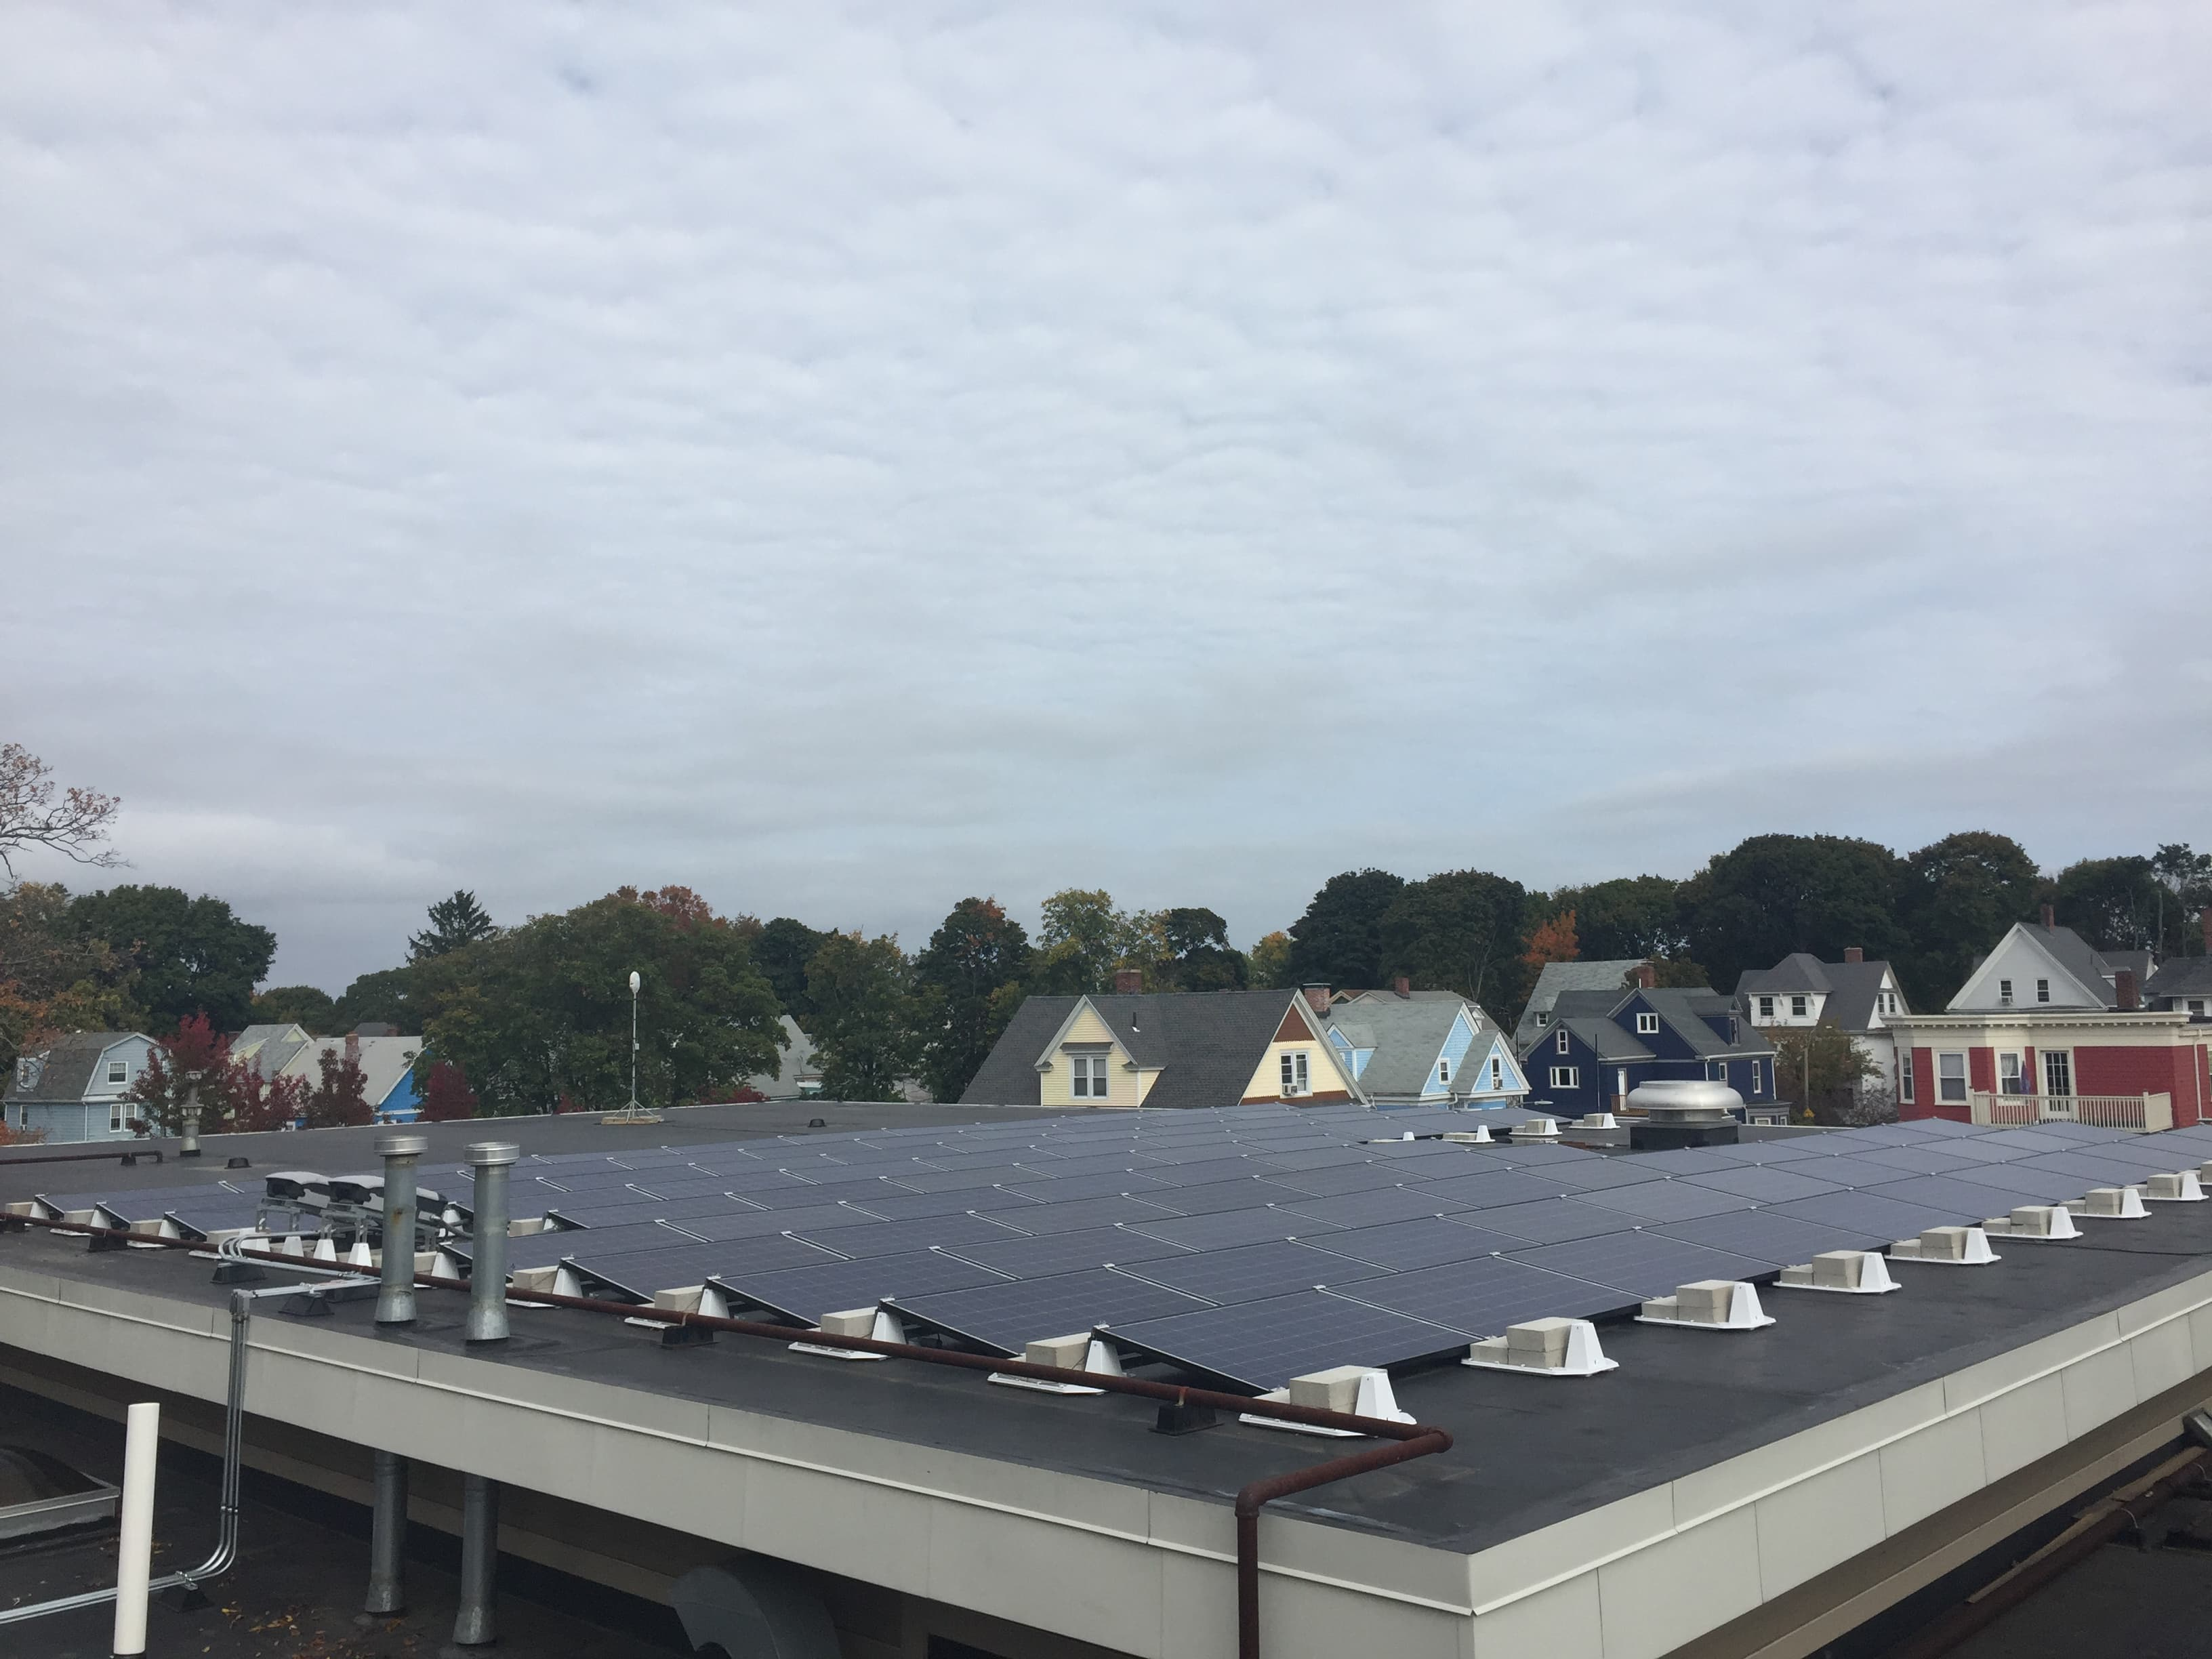 Epiphany-School-1 Boston School For Disadvantaged Children Adds Rooftop Solar